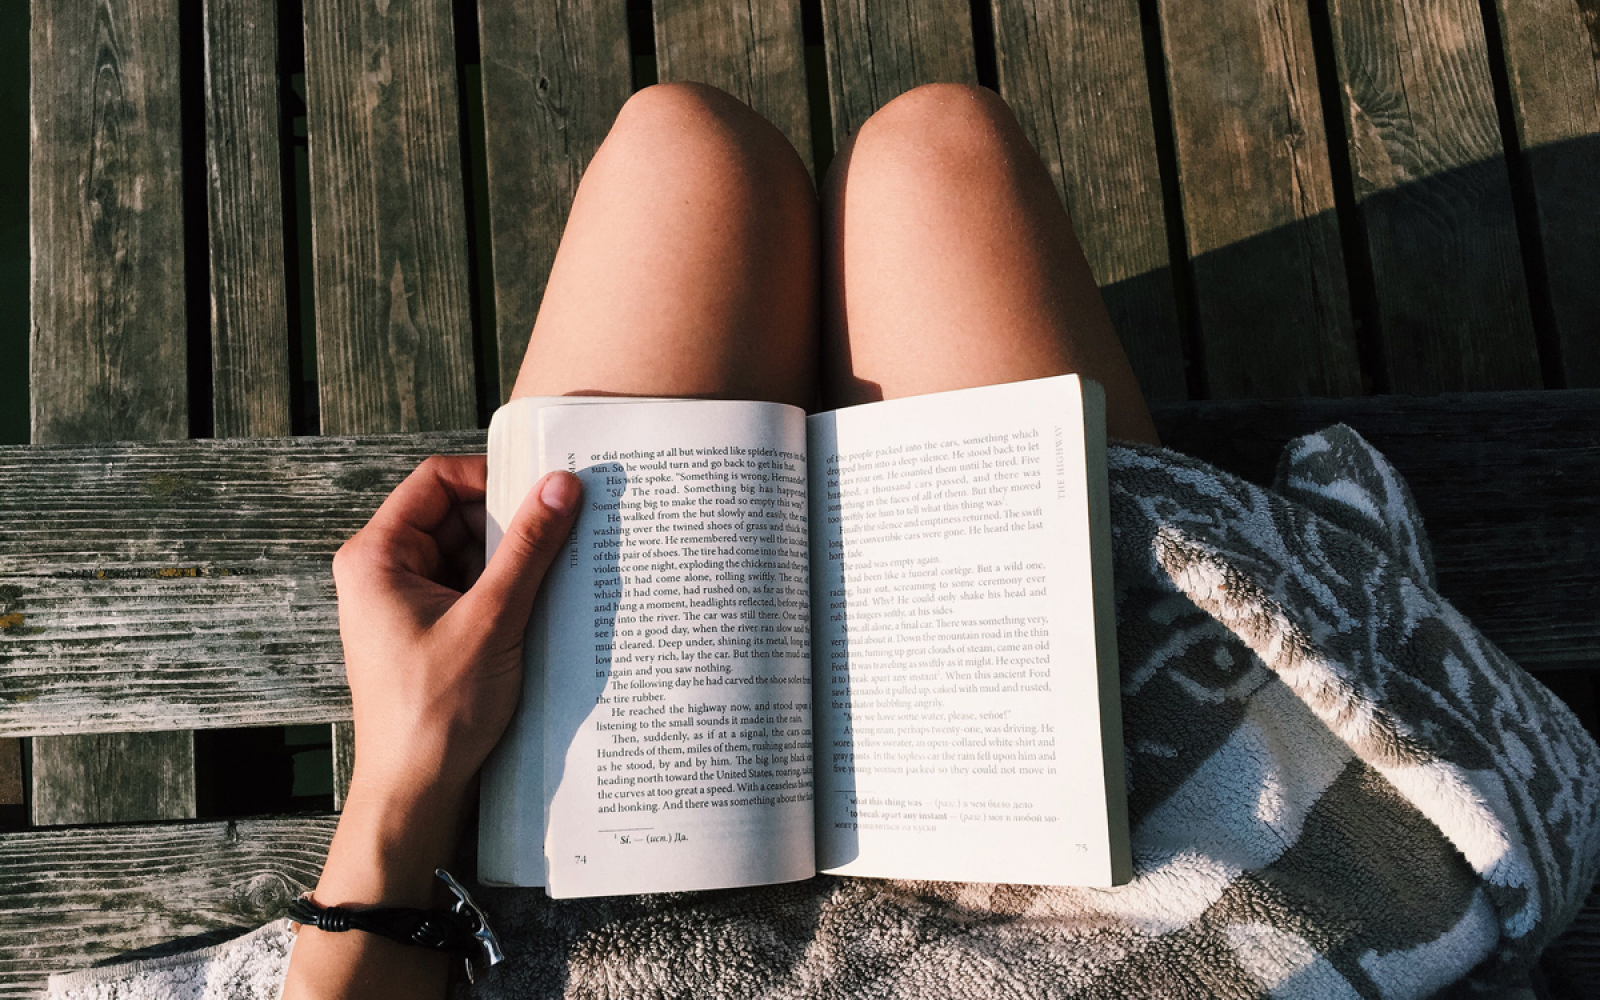 29 Stunning Literary Quotes That Will Make You Believe In The Love We All Hope For